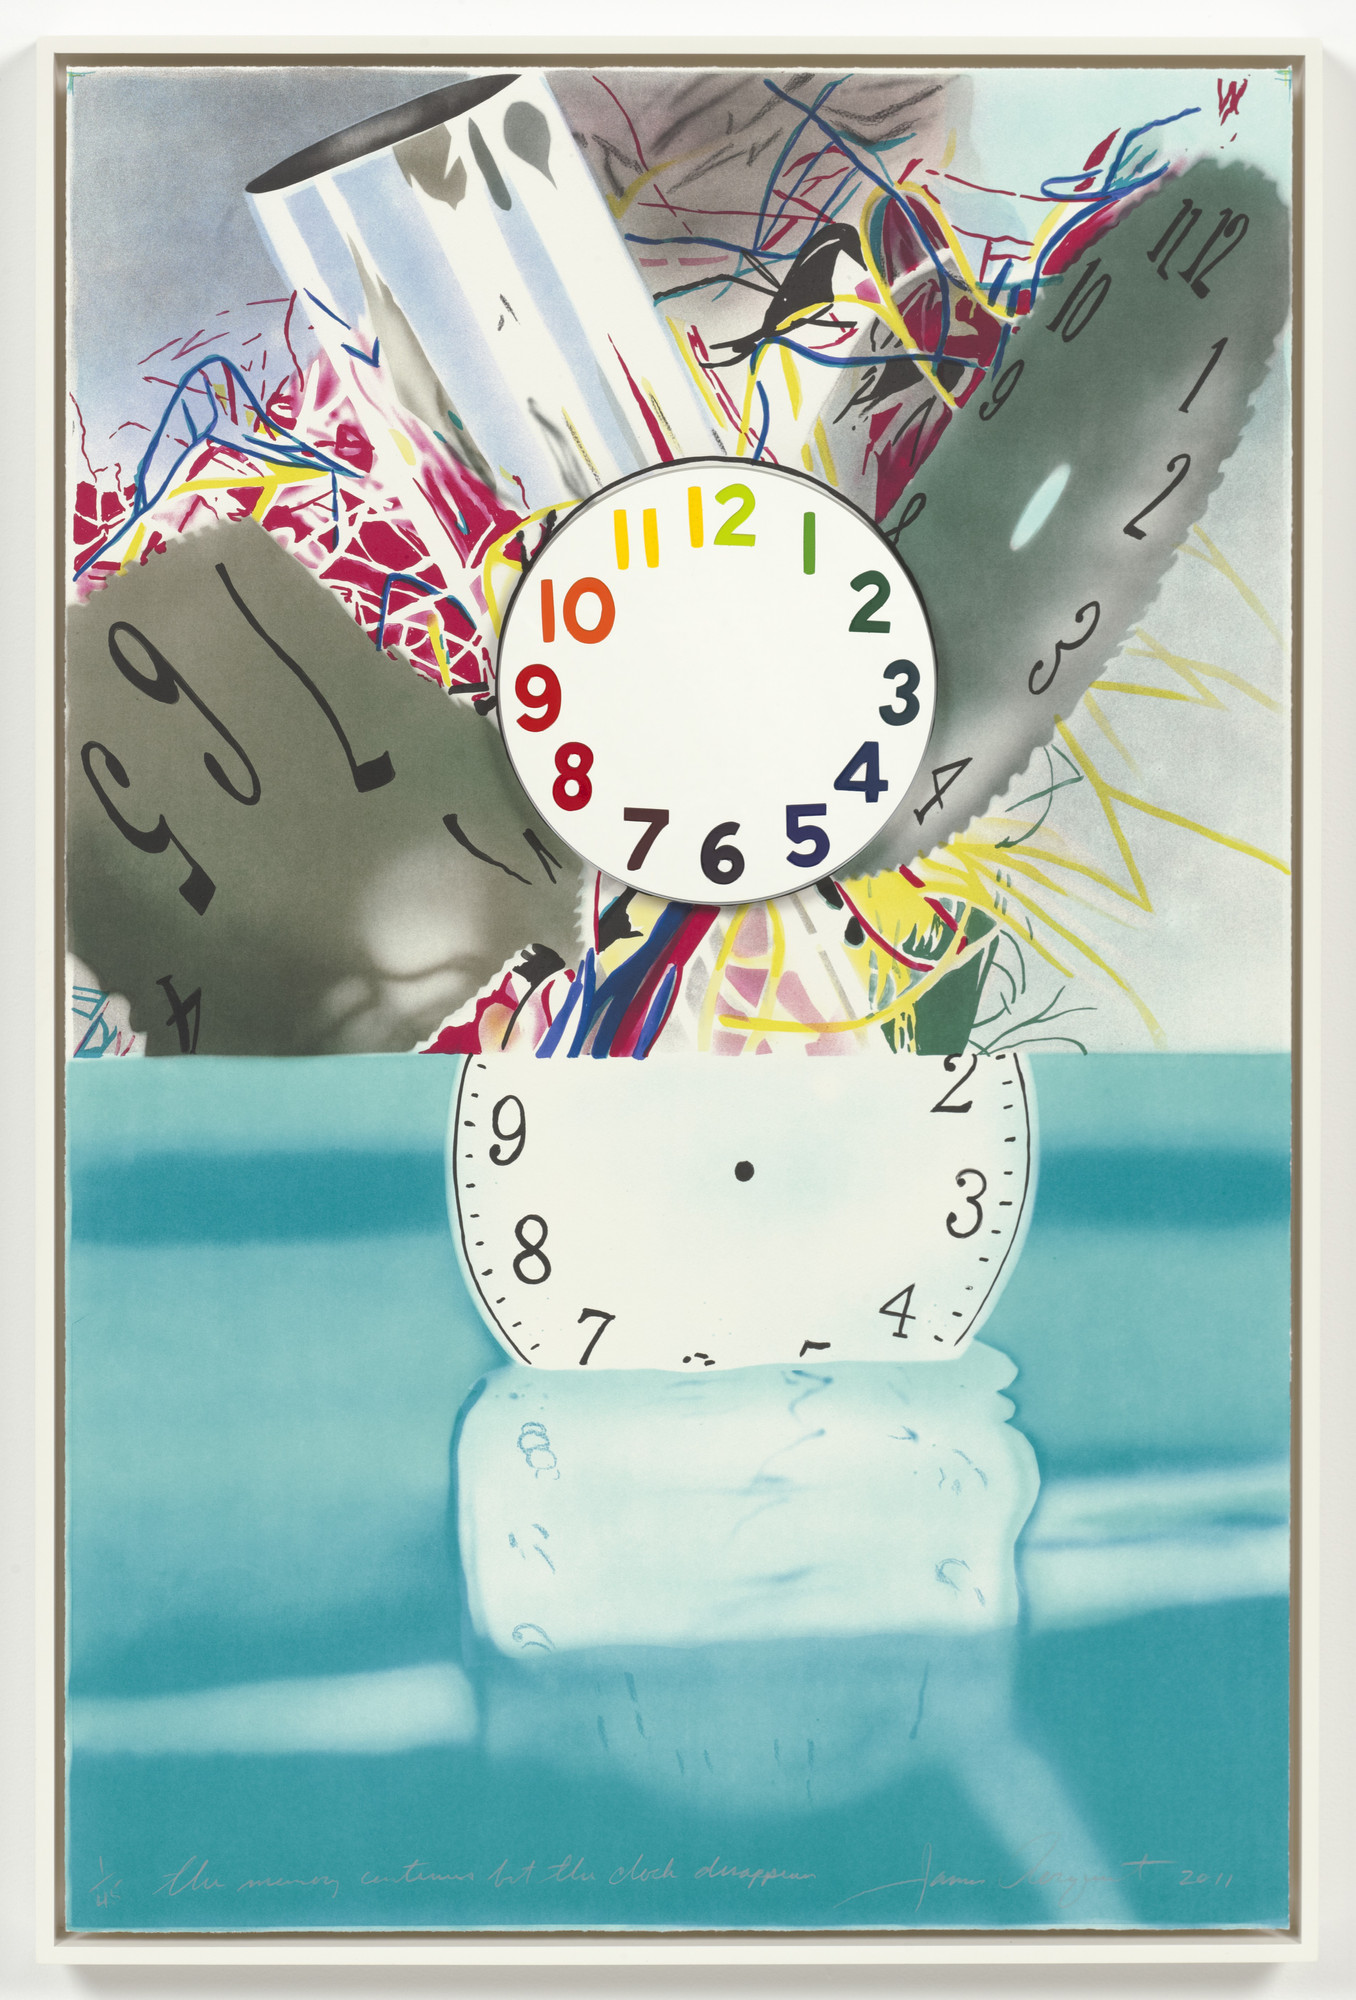 James Rosenquist. The Memory Continues but the Clock Disappears. 2011